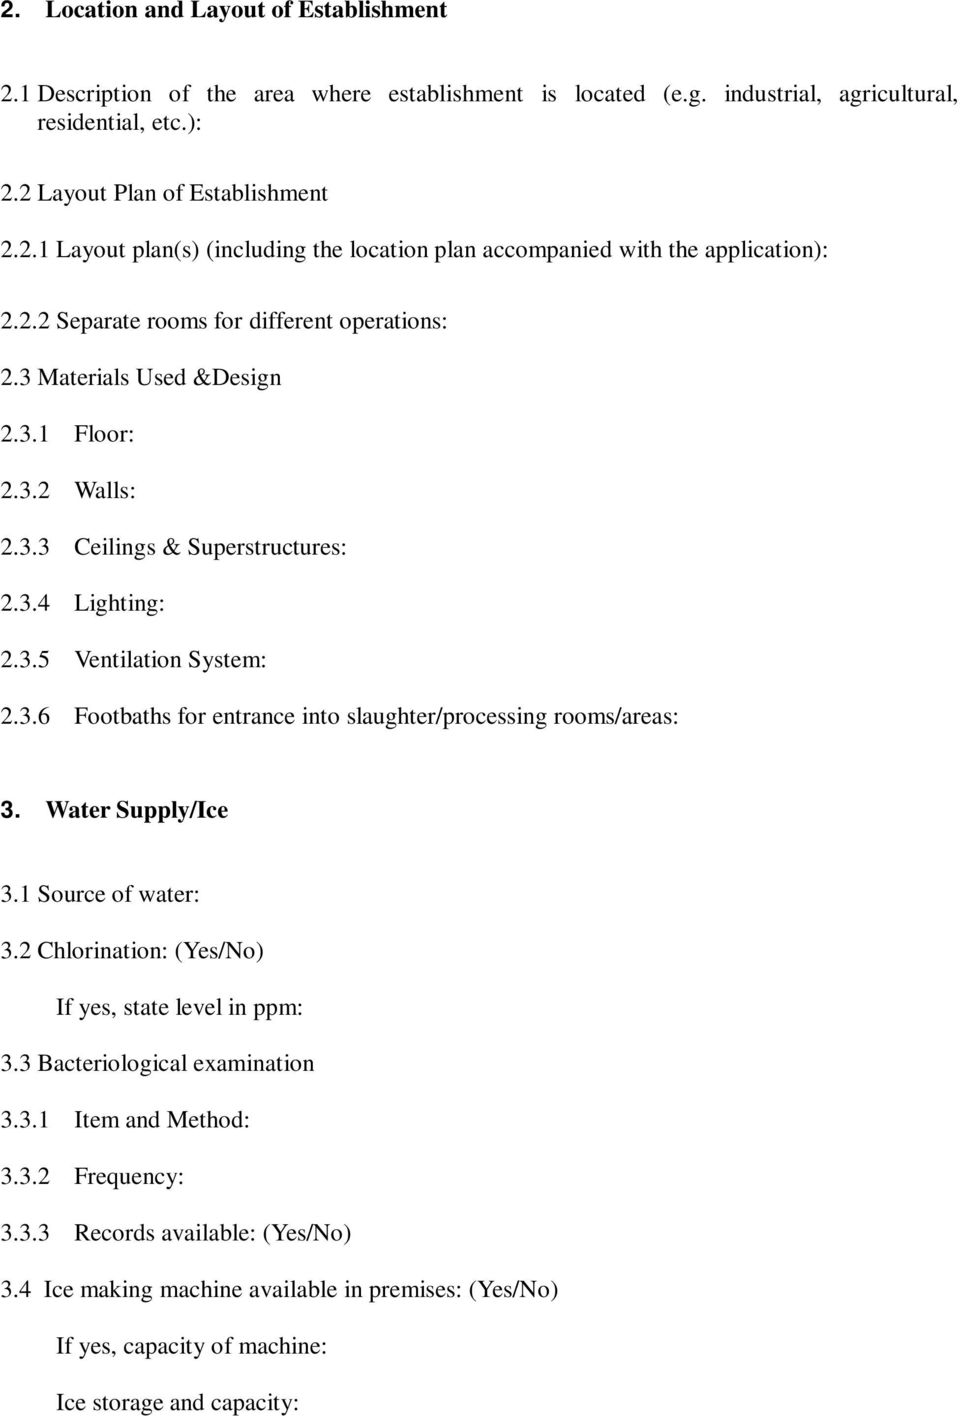 Water Supply/Ice 3.1 Source of water: 3.2 Chlorination: (Yes/No) If yes, state level in ppm: 3.3 Bacteriological examination 3.3.1 Item and Method: 3.3.2 Frequency: 3.3.3 Records available: (Yes/No) 3.